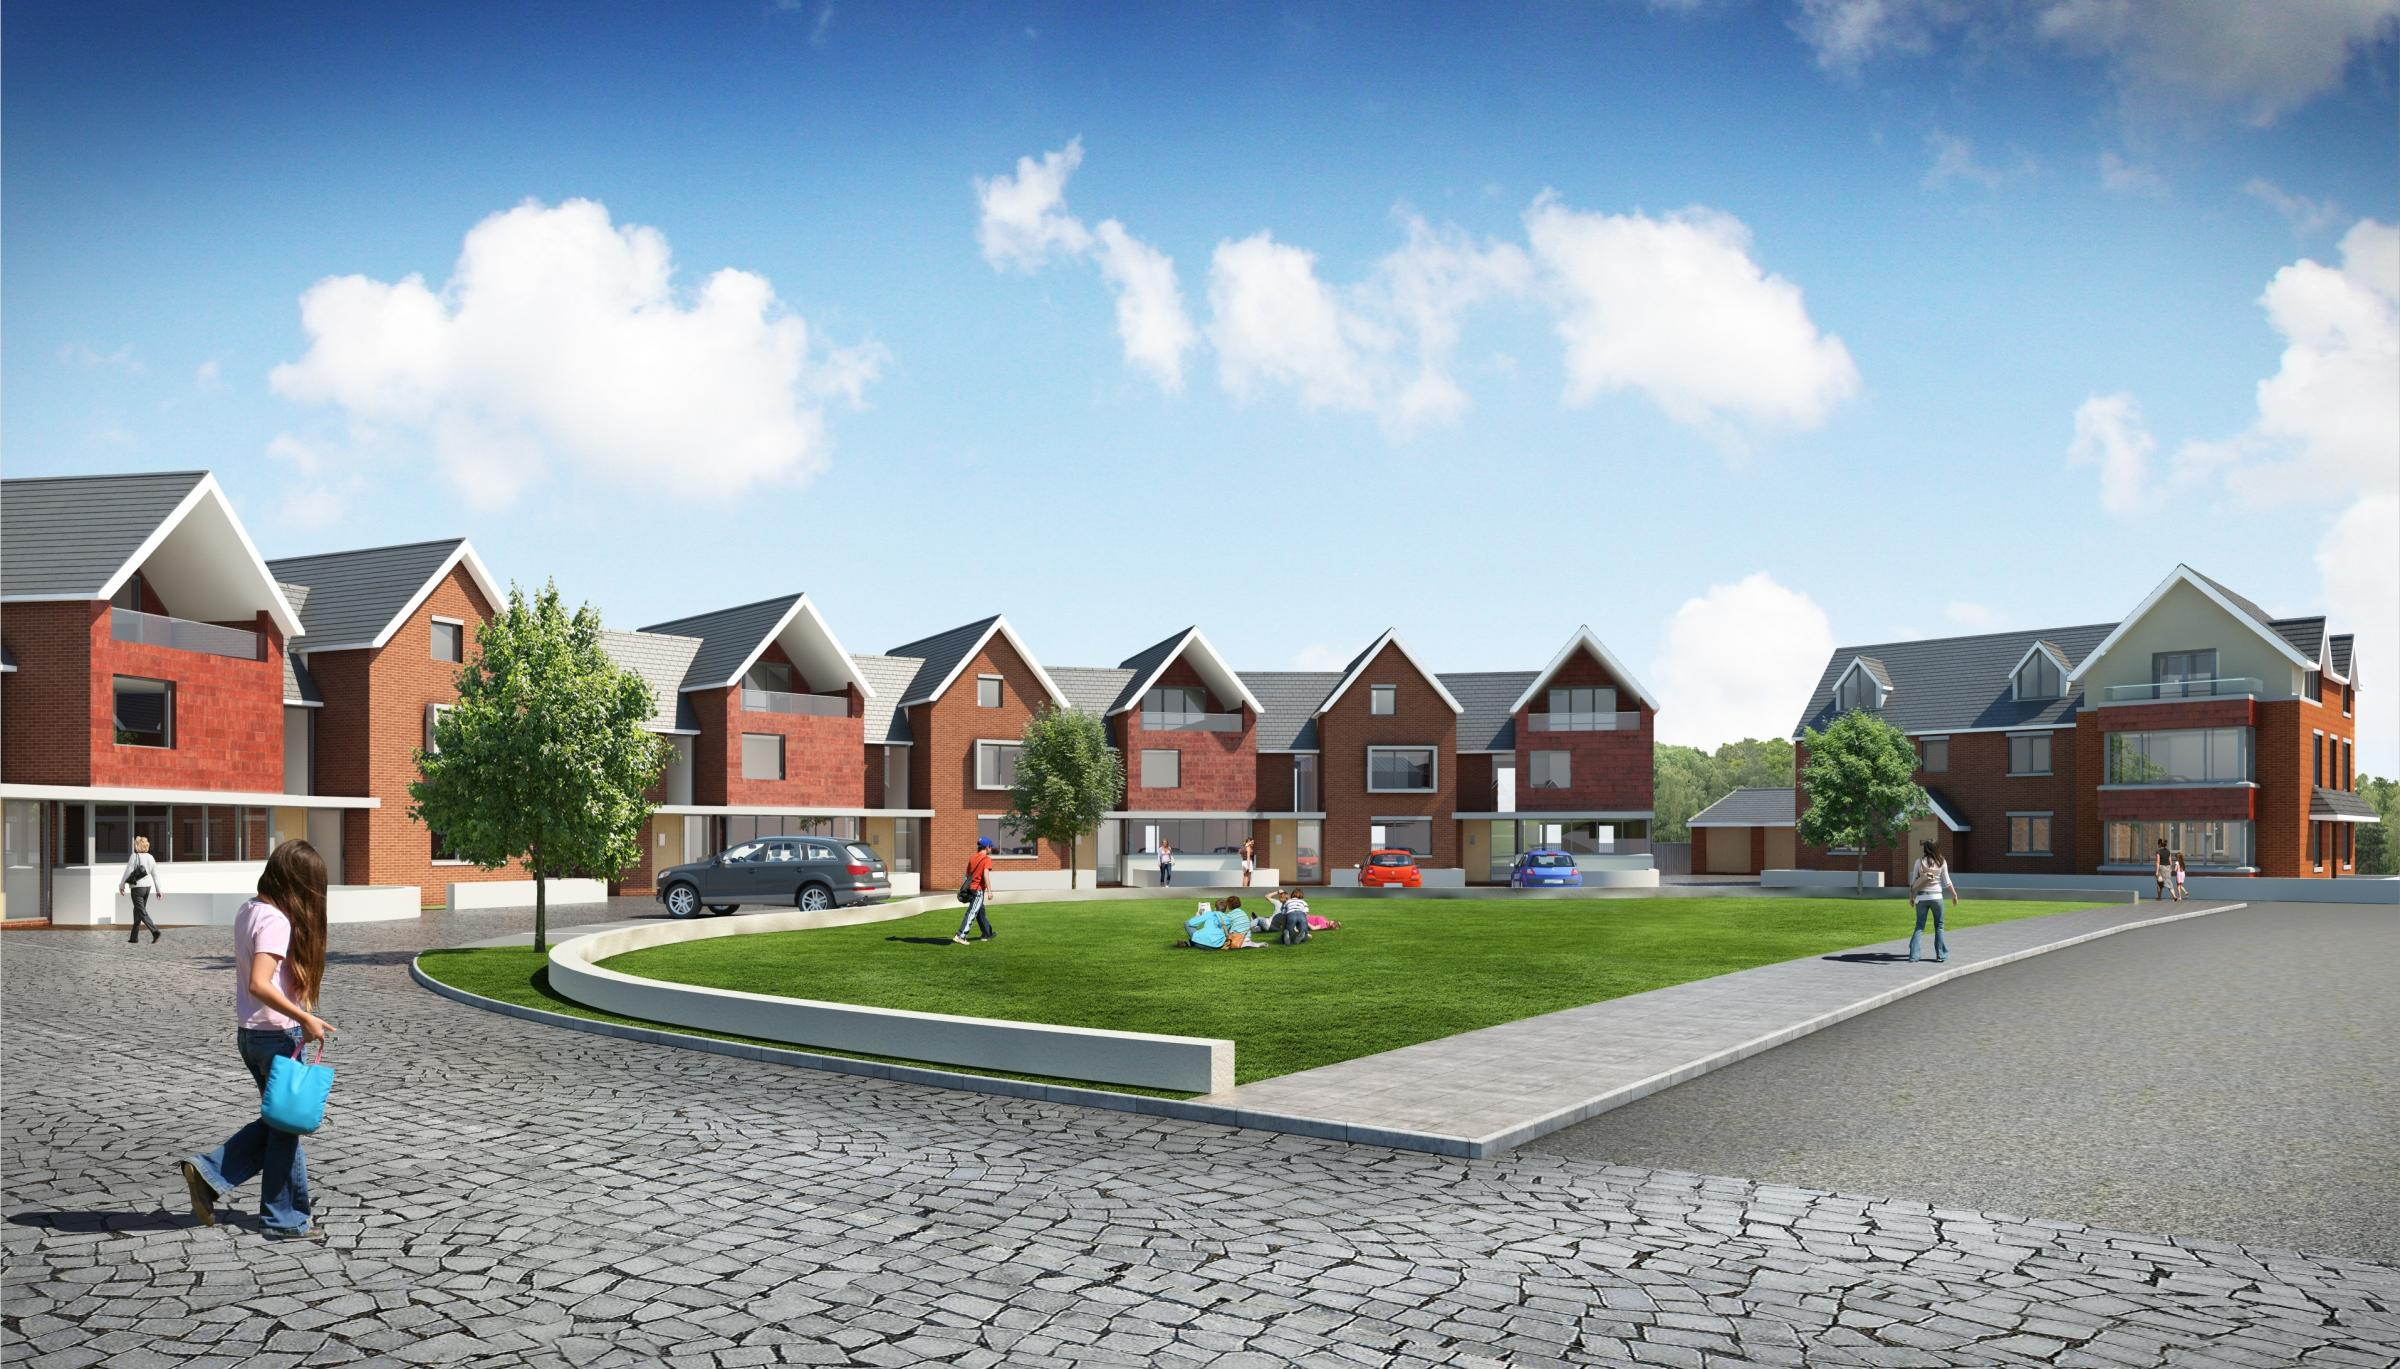 Developer receives positive feedback ahead of submitting plans for 450 homes in Sedgefield